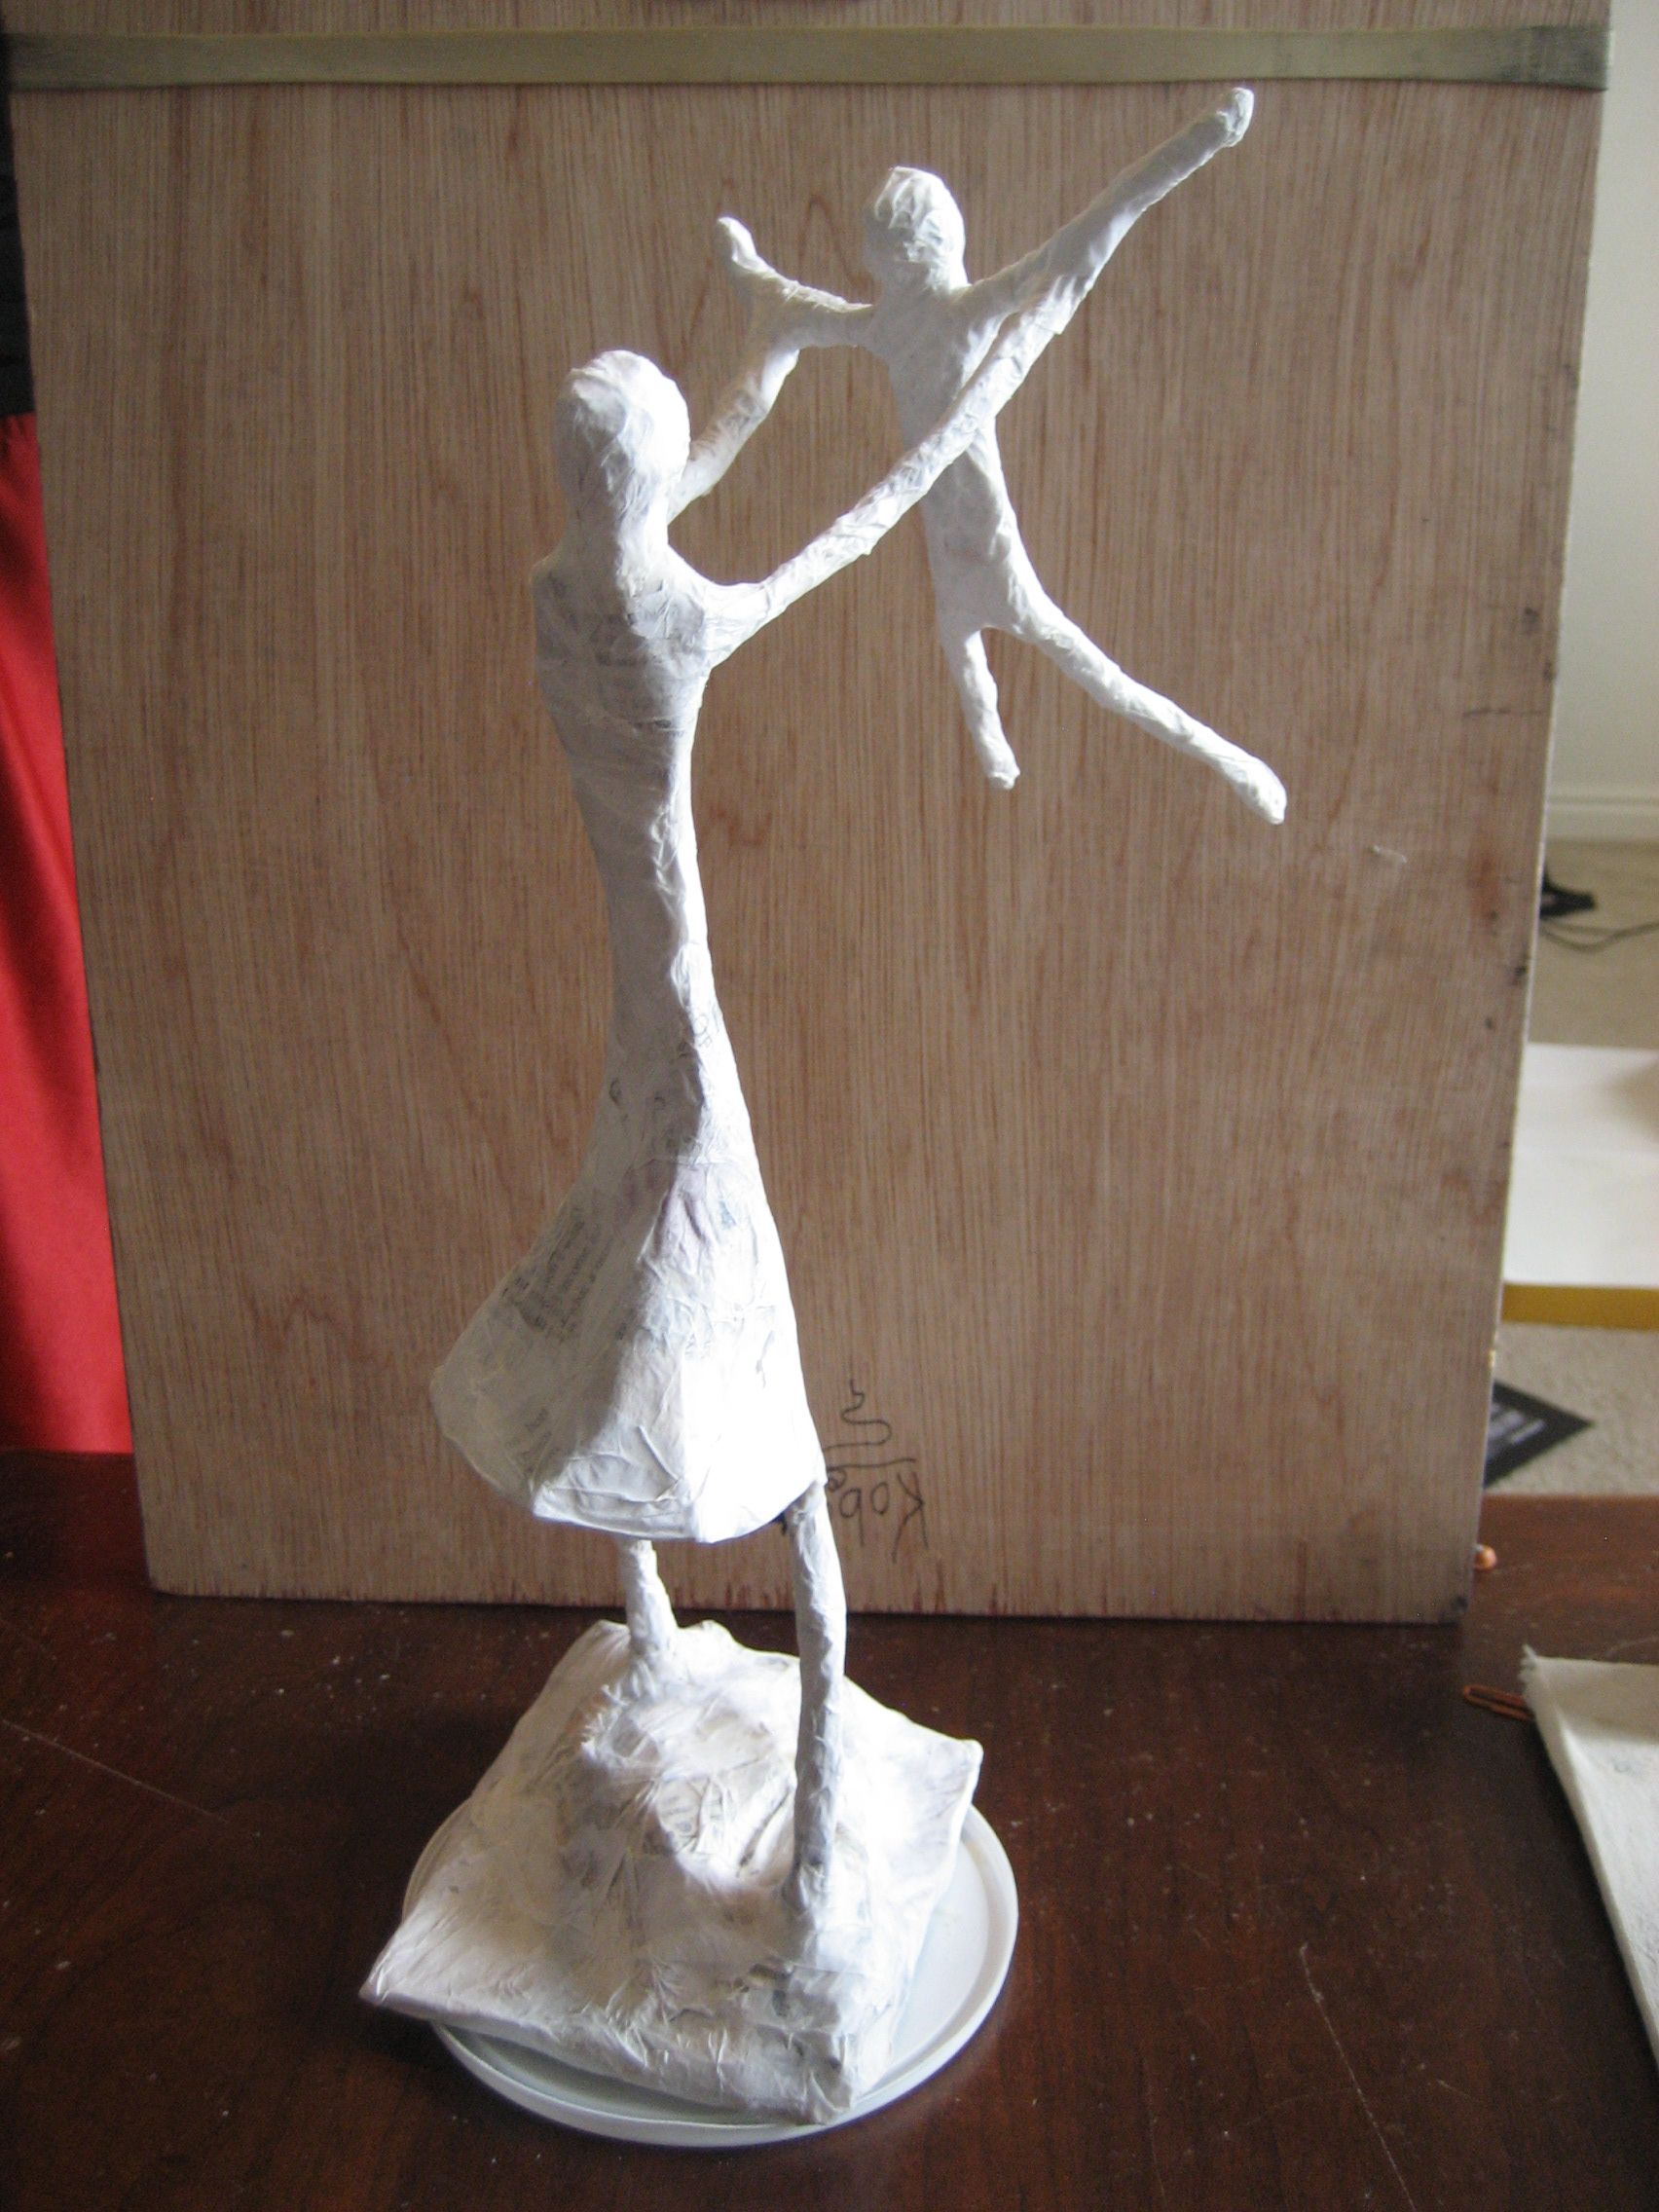 3d art projects for high school